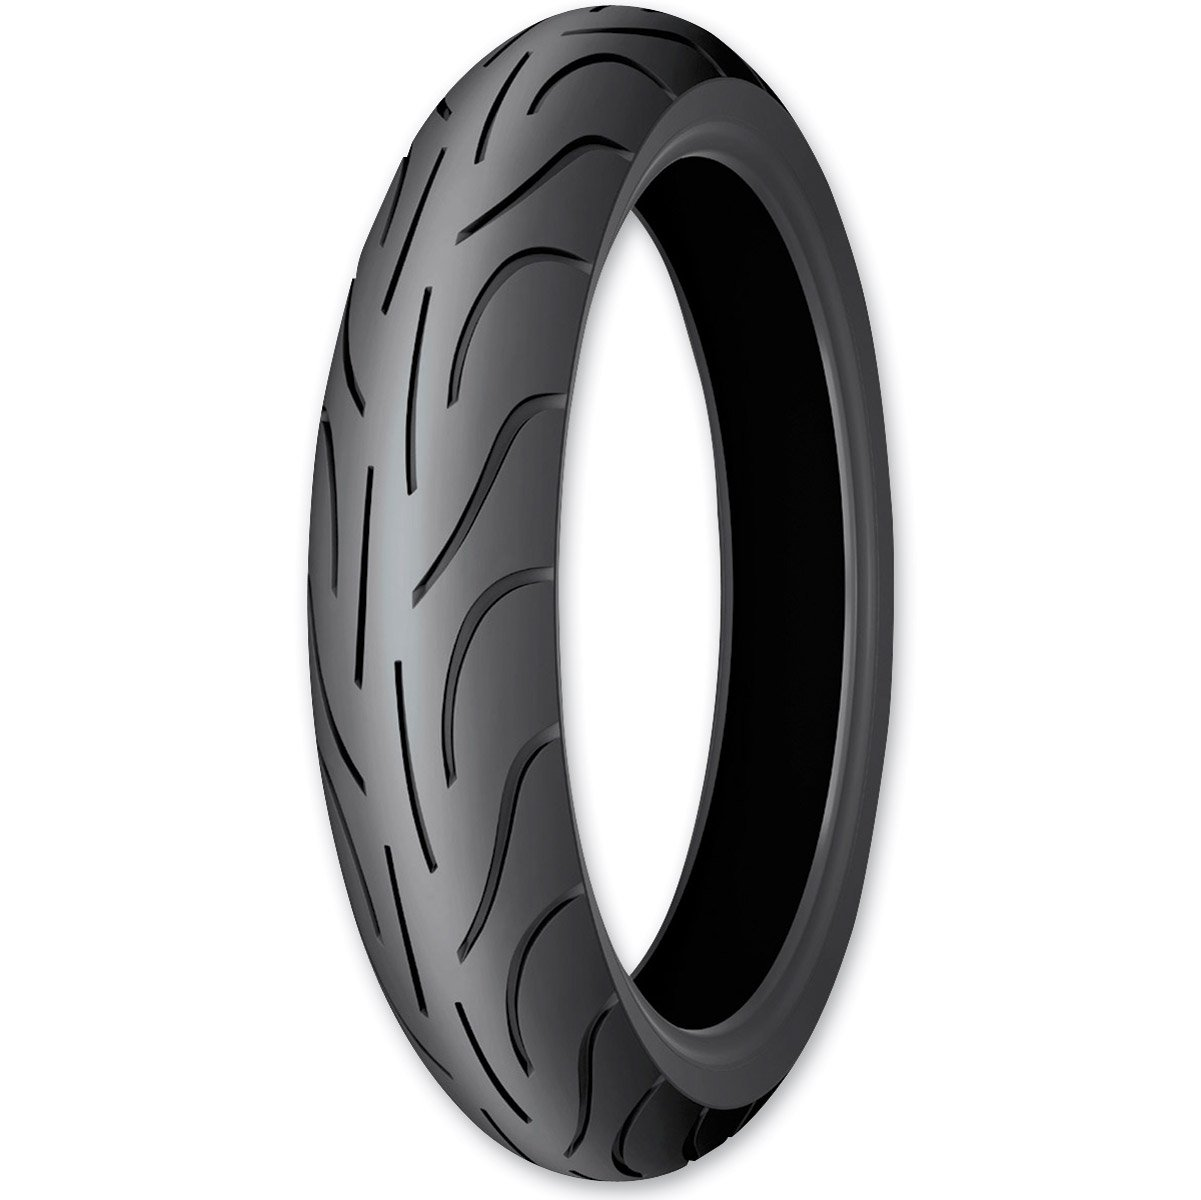 Michelin Pilot Power Front Motorcycle Tires - 120/70ZR-17 92557